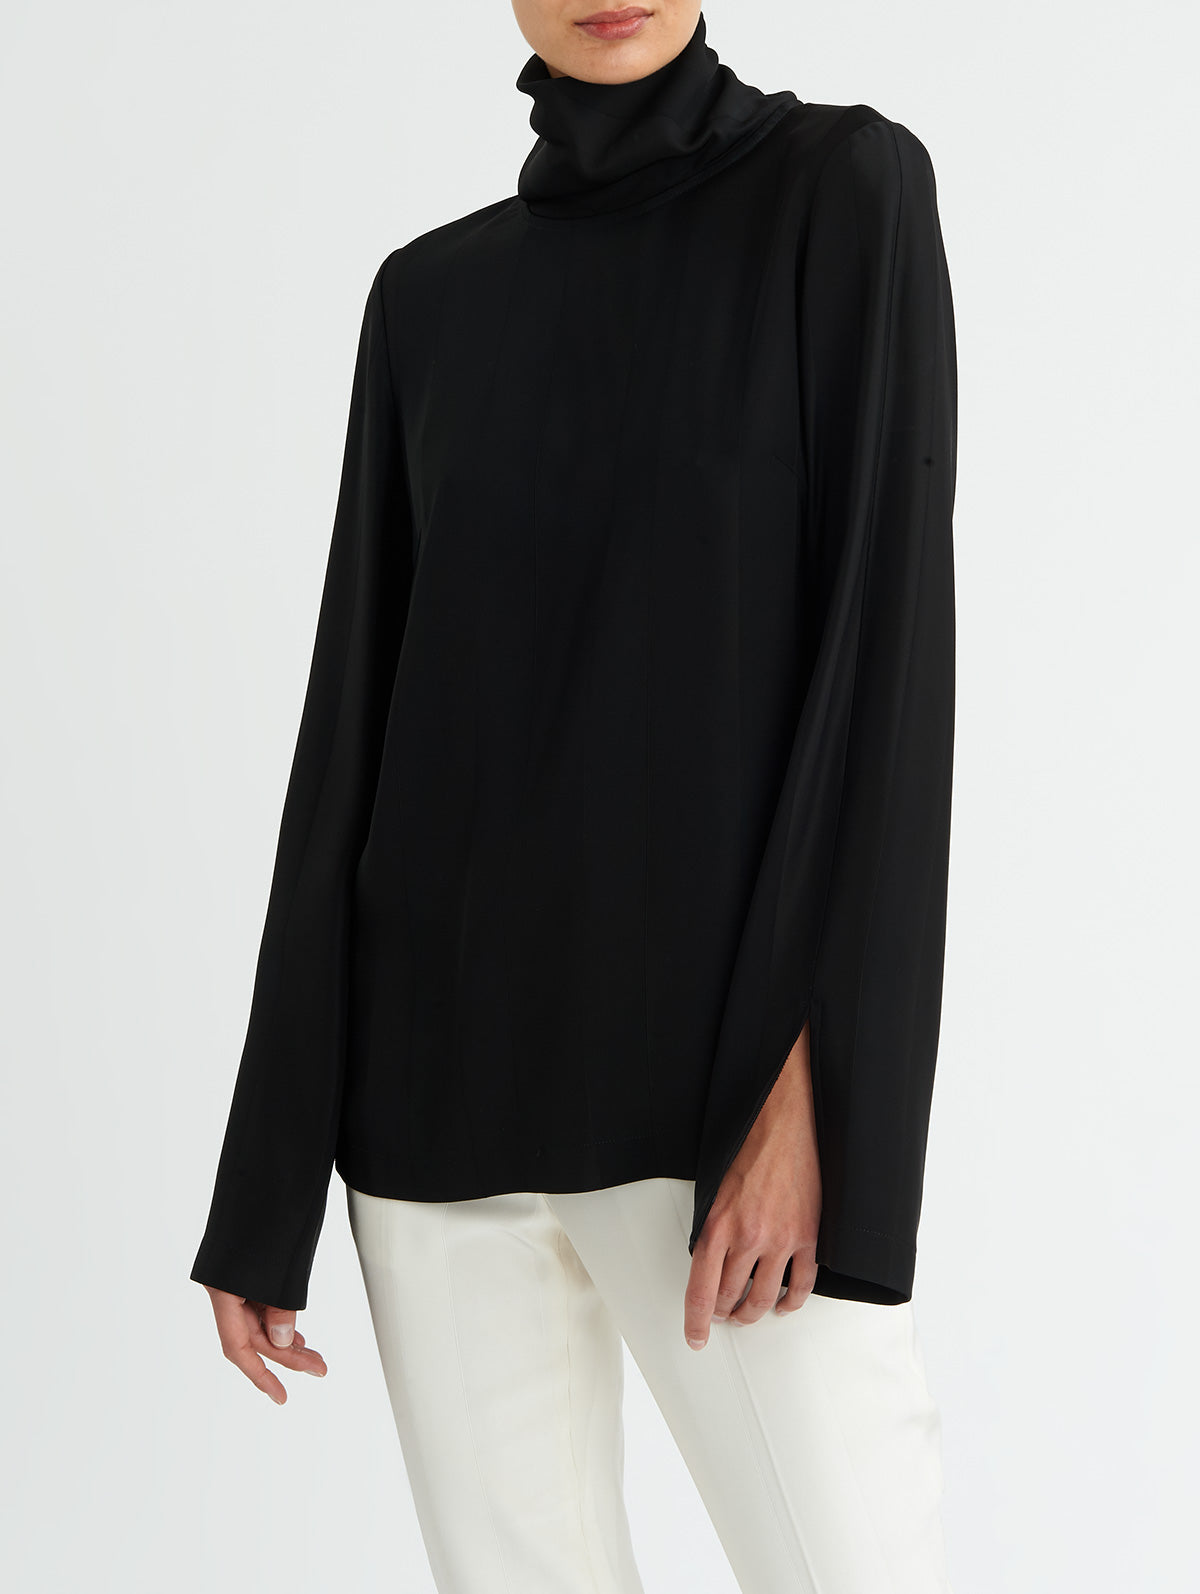 STRIPED FUNNEL NECK TOP, BLACK<br> PRE-ORDER